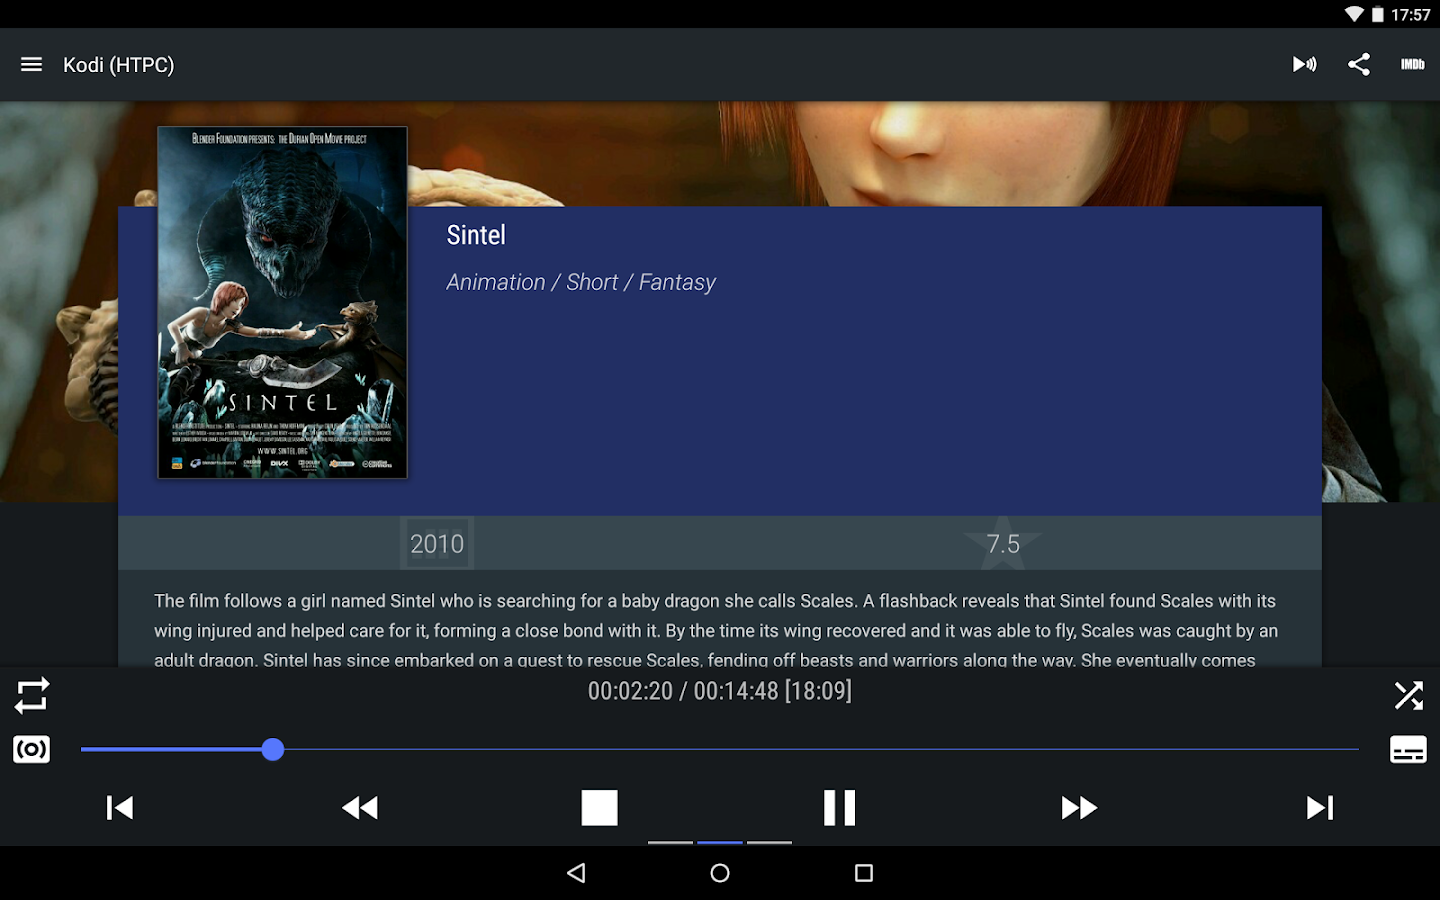 Yatse, the Kodi Remote - Android Apps on Google Play